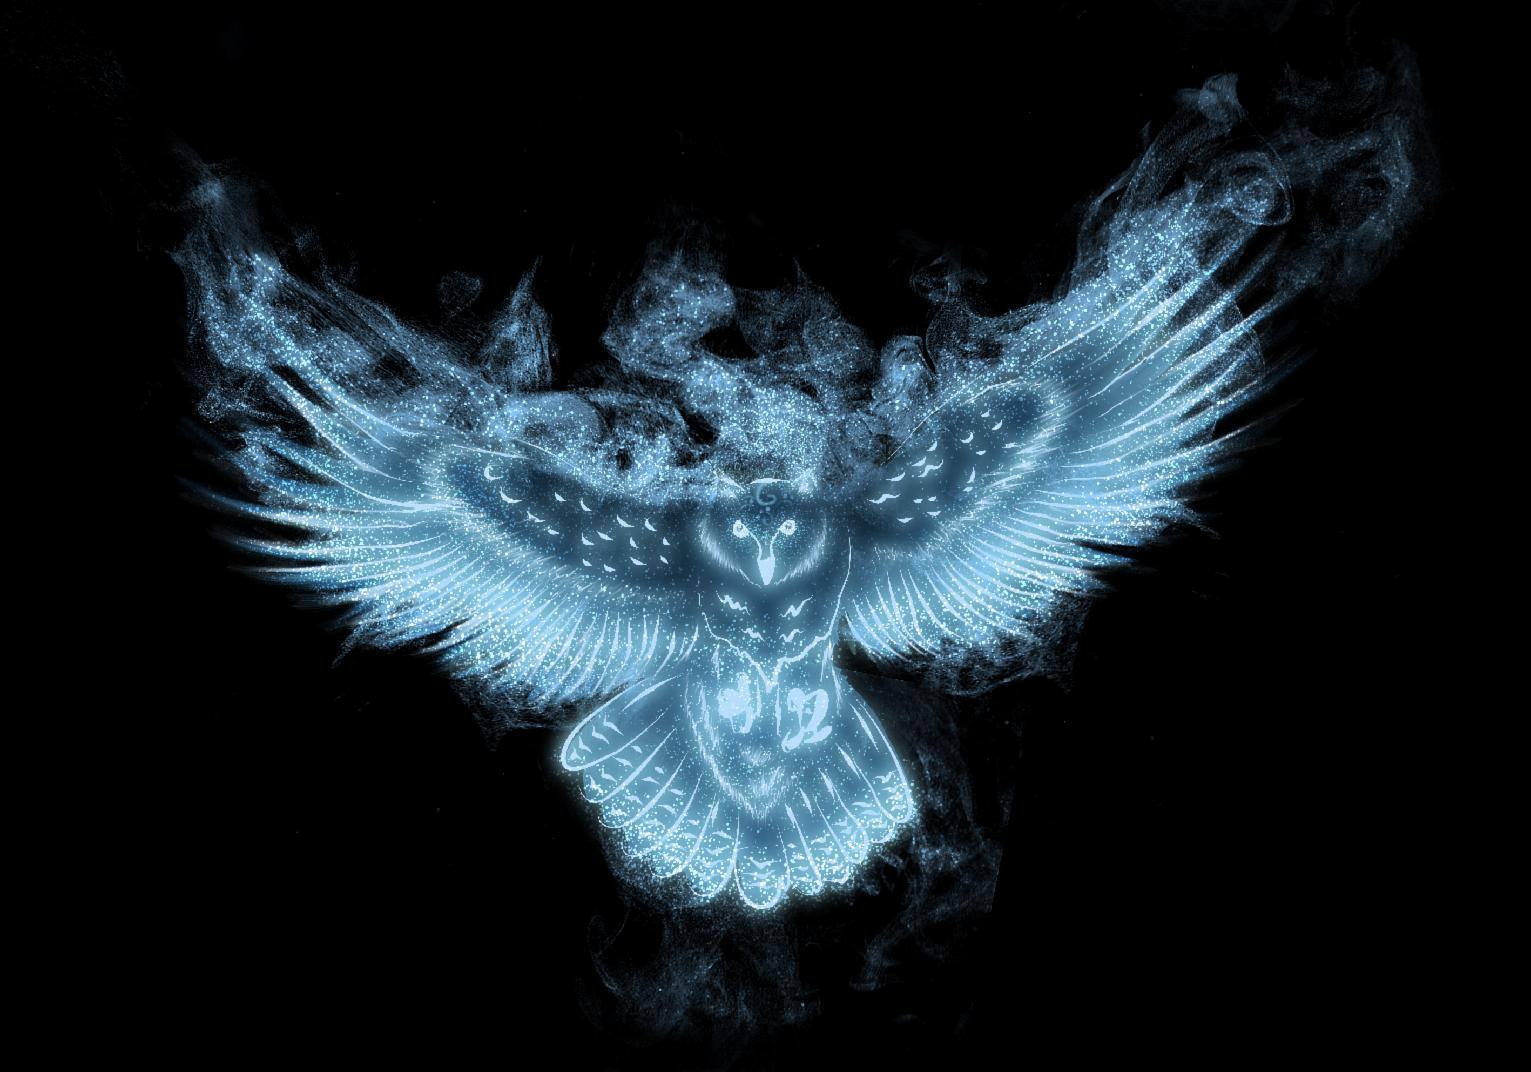 What is your Harry Potter Patronus?